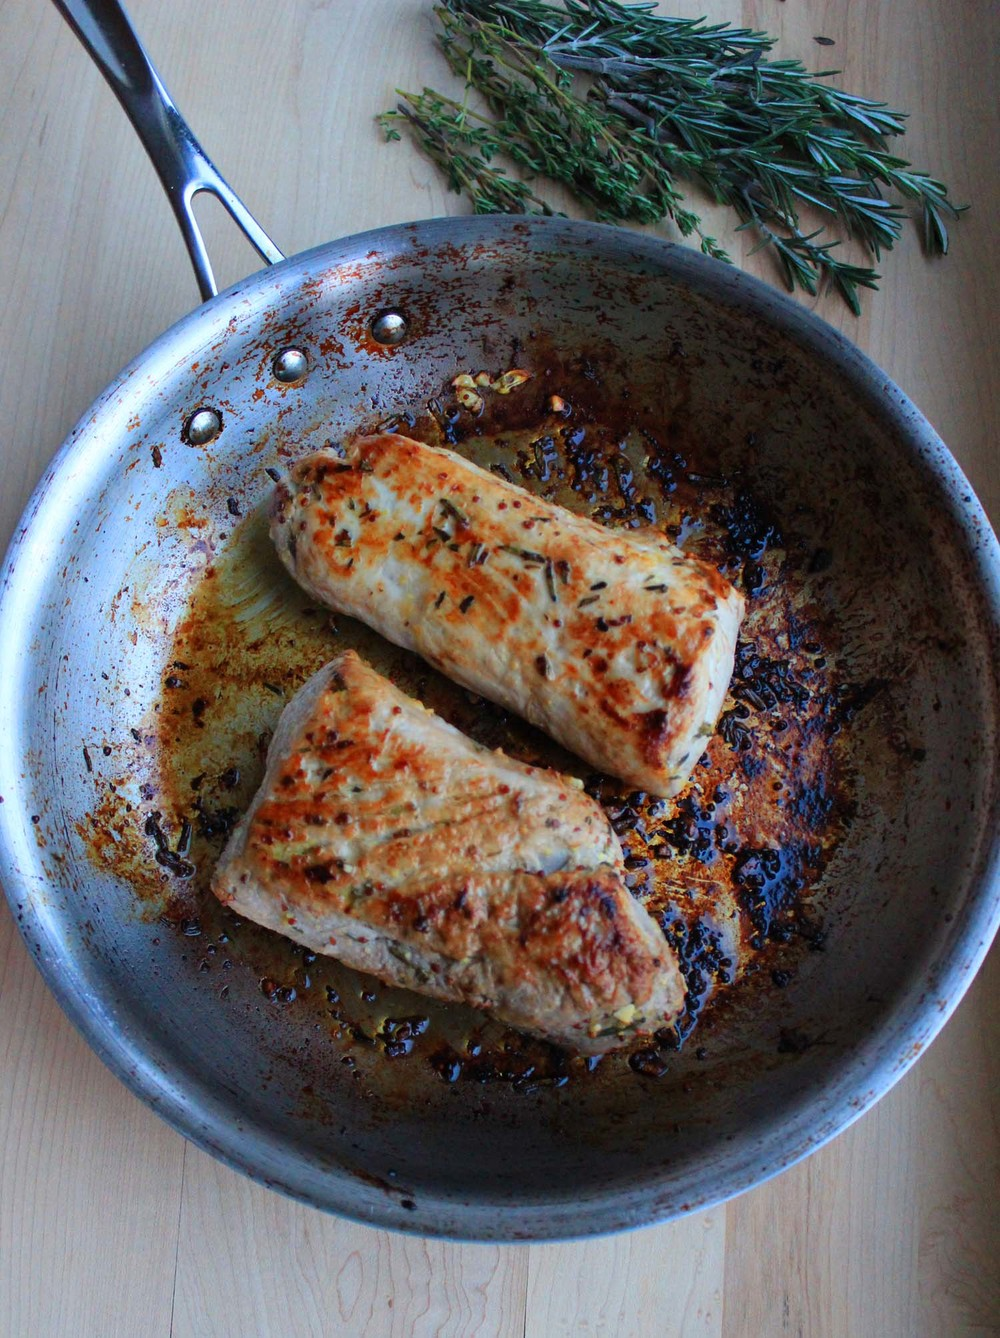 Herb Marinated Pork Loin   | Image:   Laura Messersmith